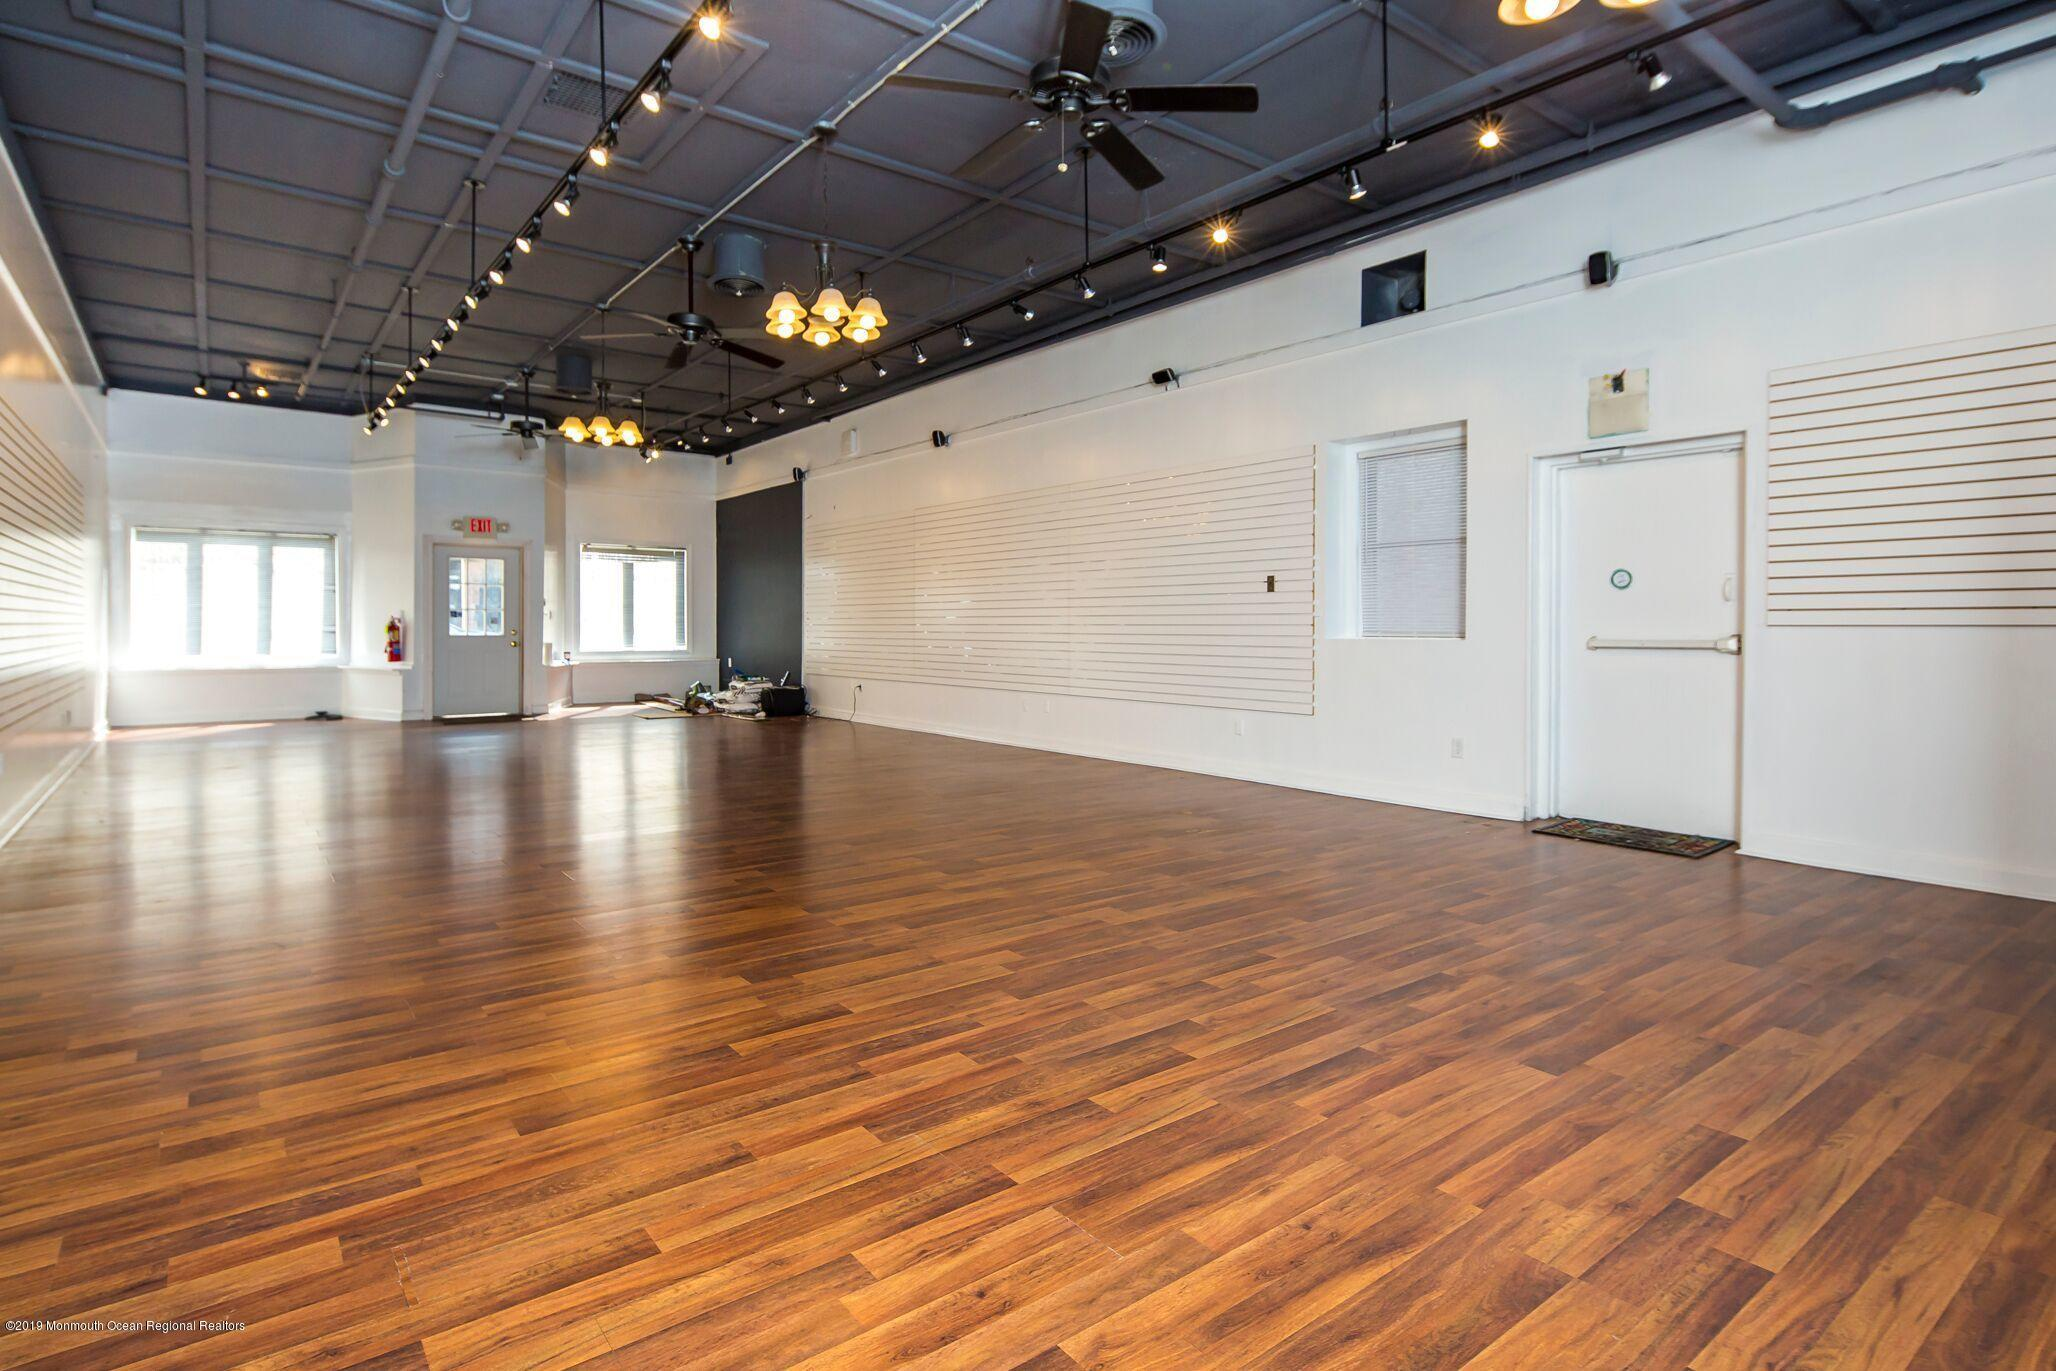 Amazing 1200 sf retail or office space with new floors, high ceilings and uber cool vibe.  Not only does it have 2 baths and a conference room area, but it has a shower and parking!  This will not last, come see it for yourself.